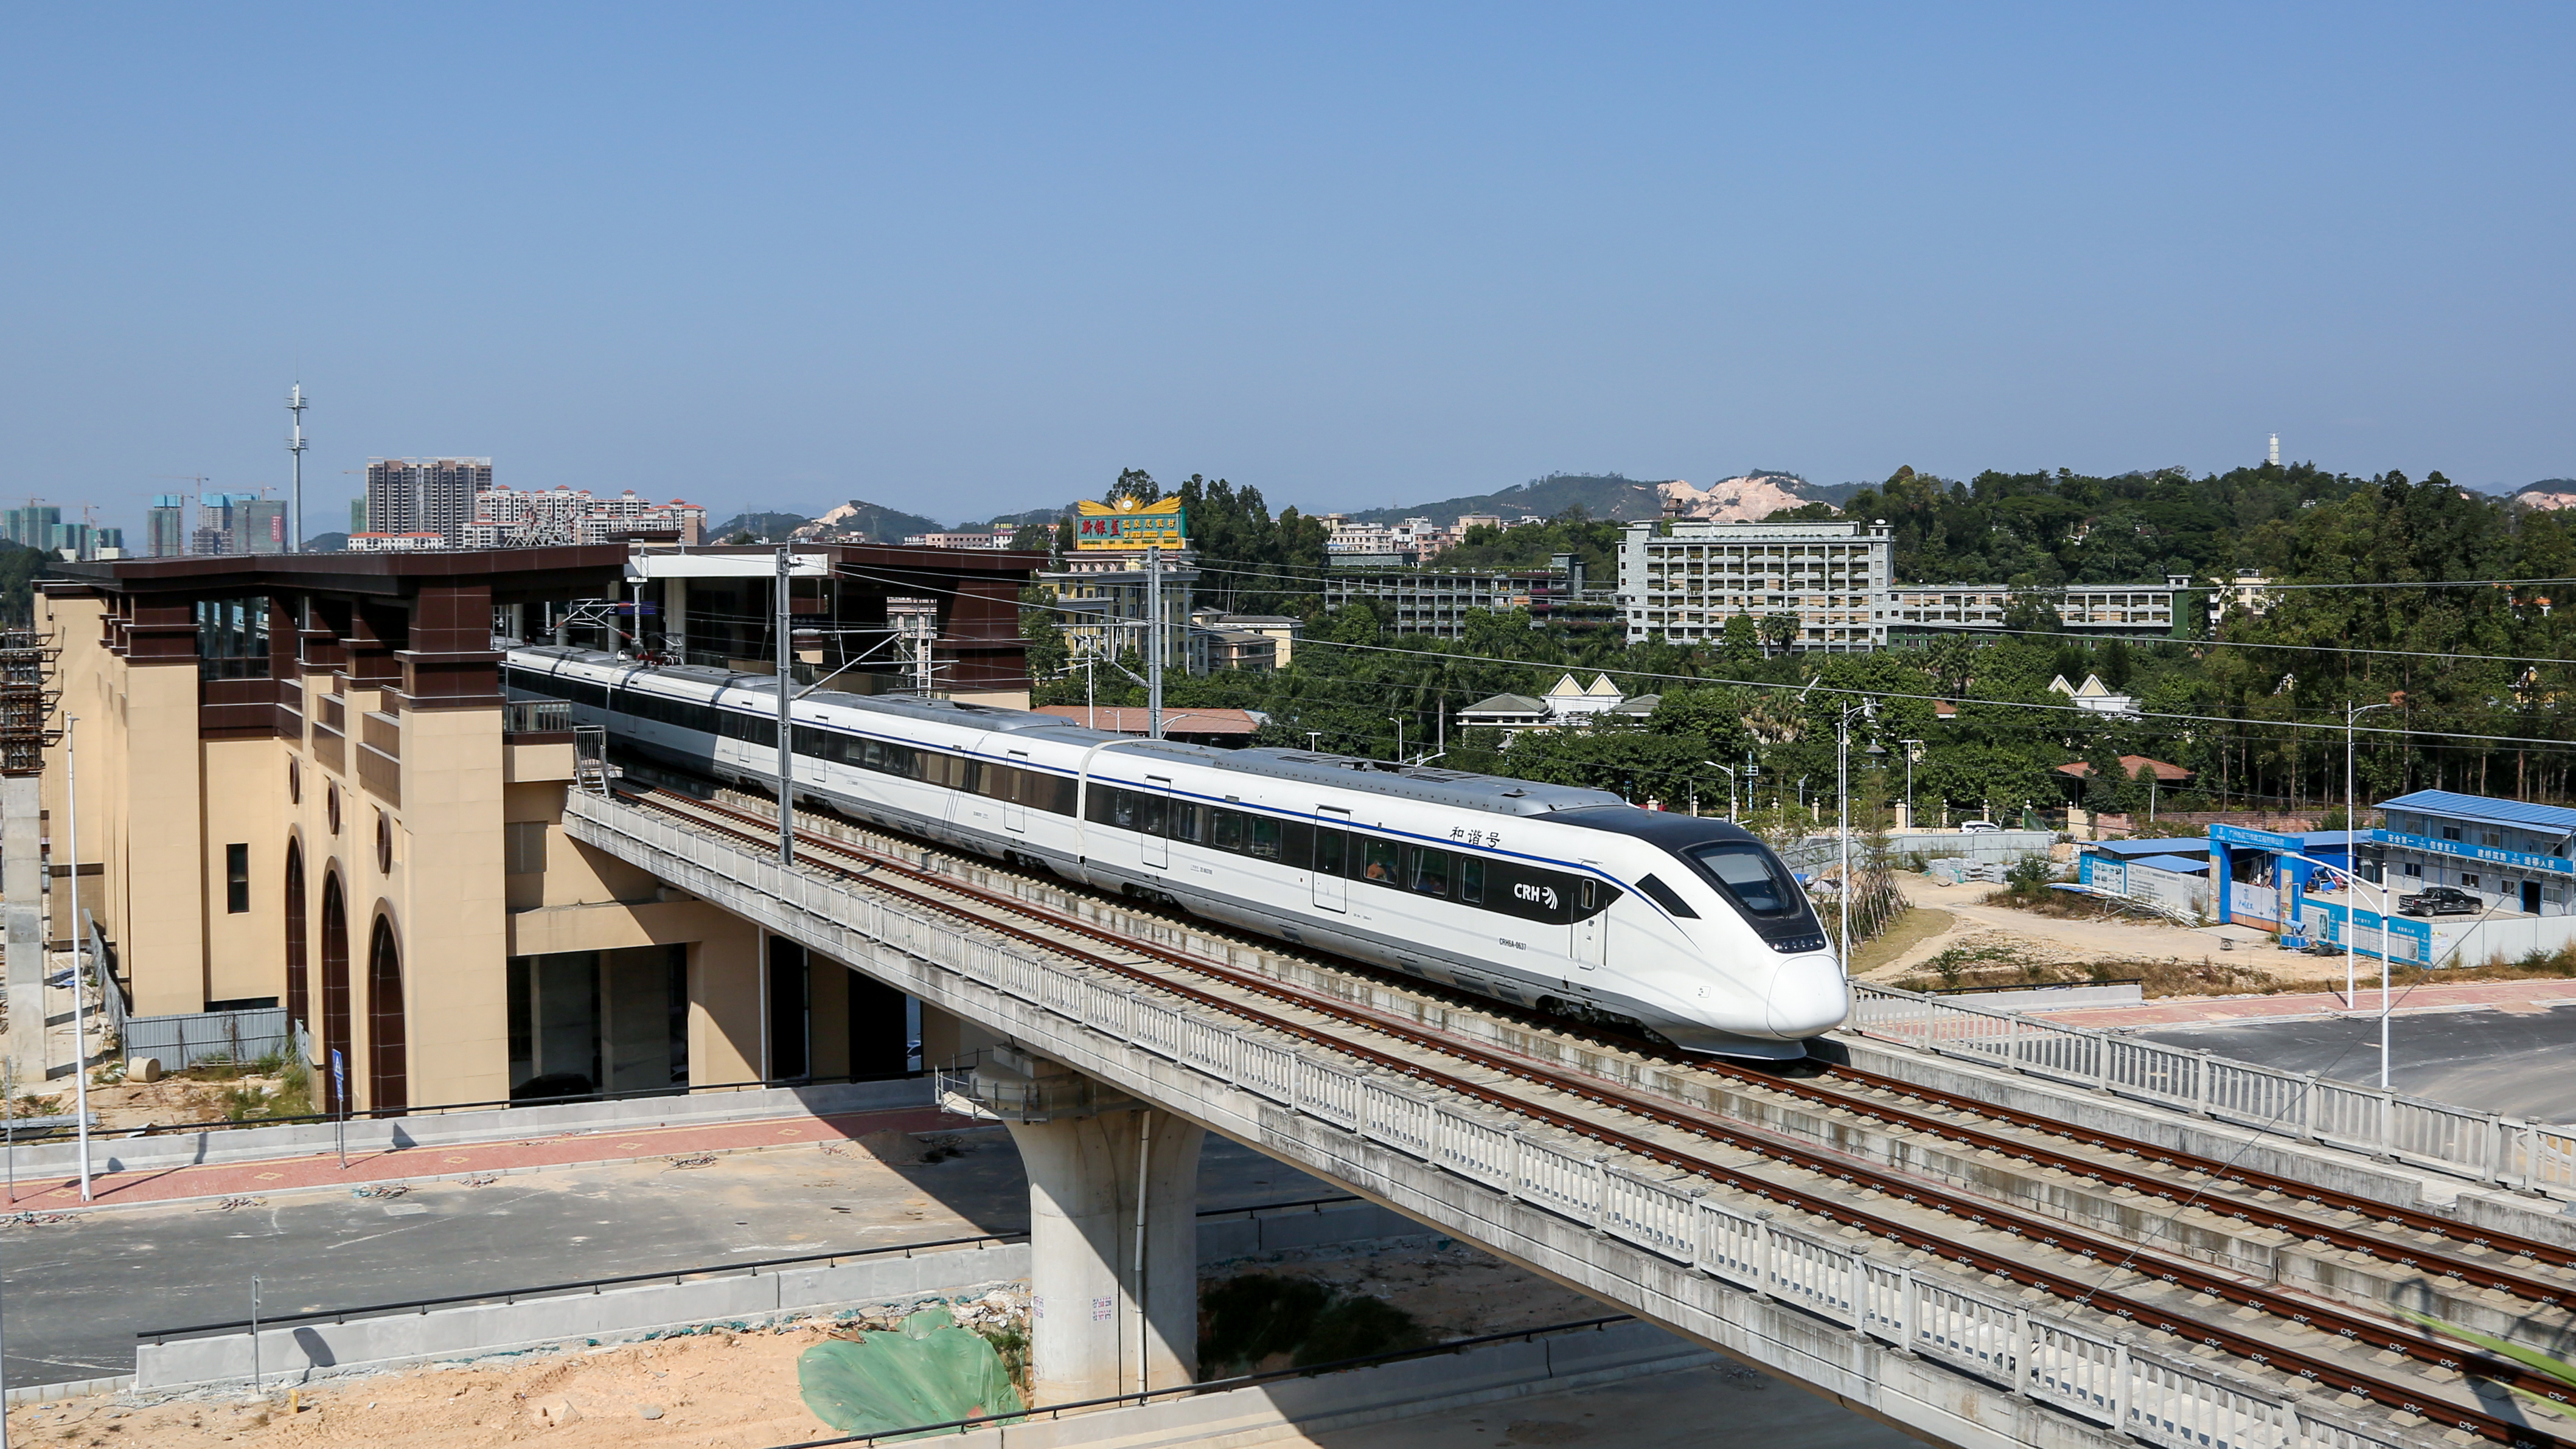 The first intercity railway line operates by a domestic local rail transit company, Guangqing Guangzhou East Ring Intercity Railway opens to traffic in Guangzhou city, south China's Guangdong province, 30 November 2020. No Use China. No Use France.